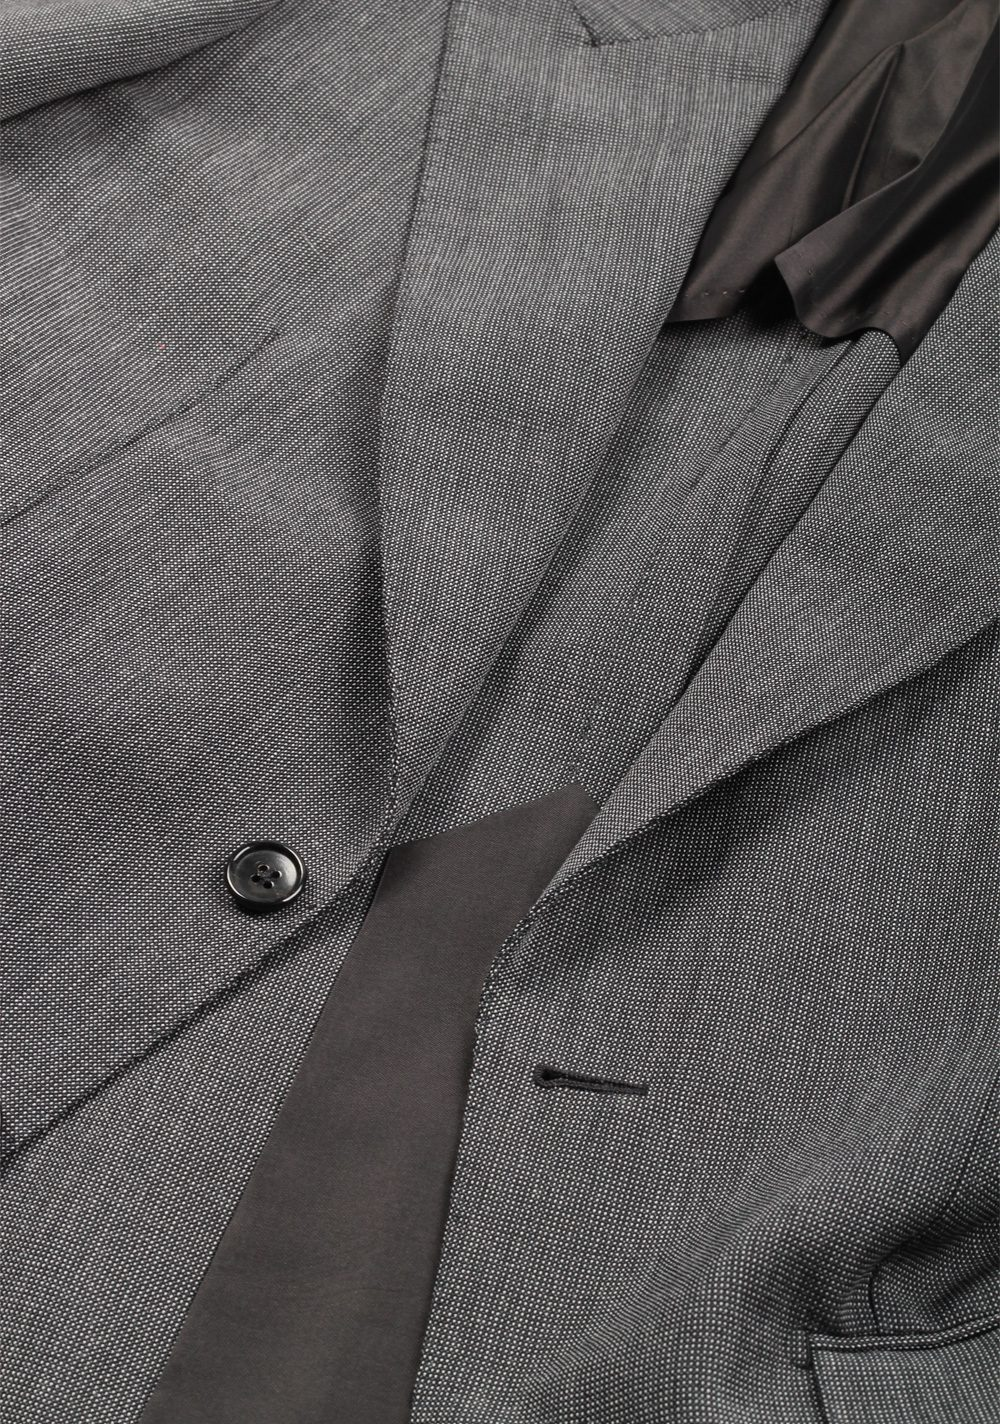 TOM FORD Shelton Gray Suit Size 46 / 36R U.S. In Mohair Wool   Costume Limité